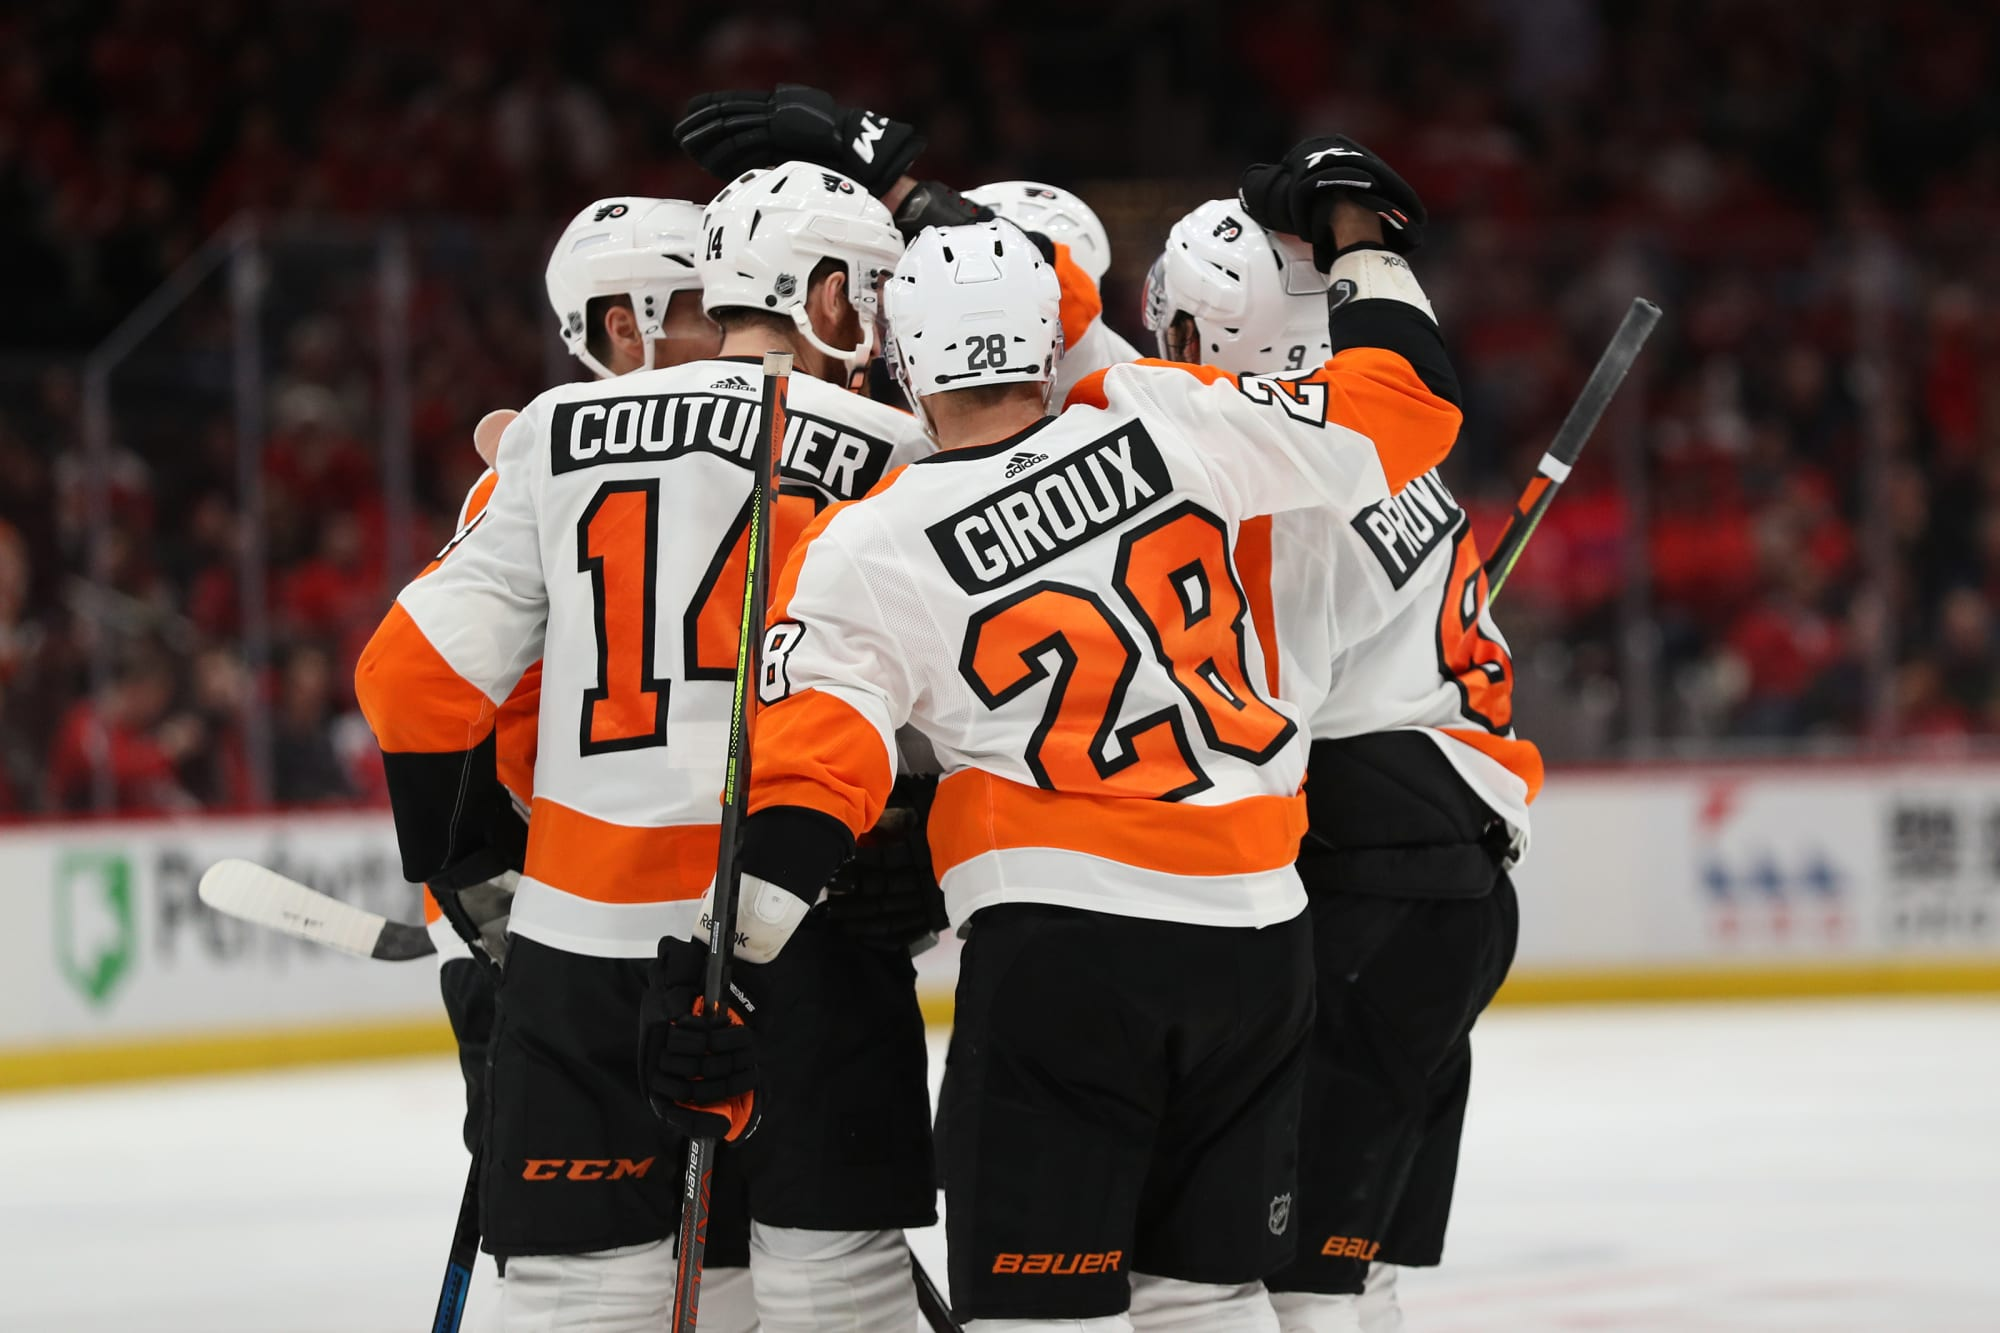 Philadelphia Flyers: Fourth best odds to win Eastern Conference